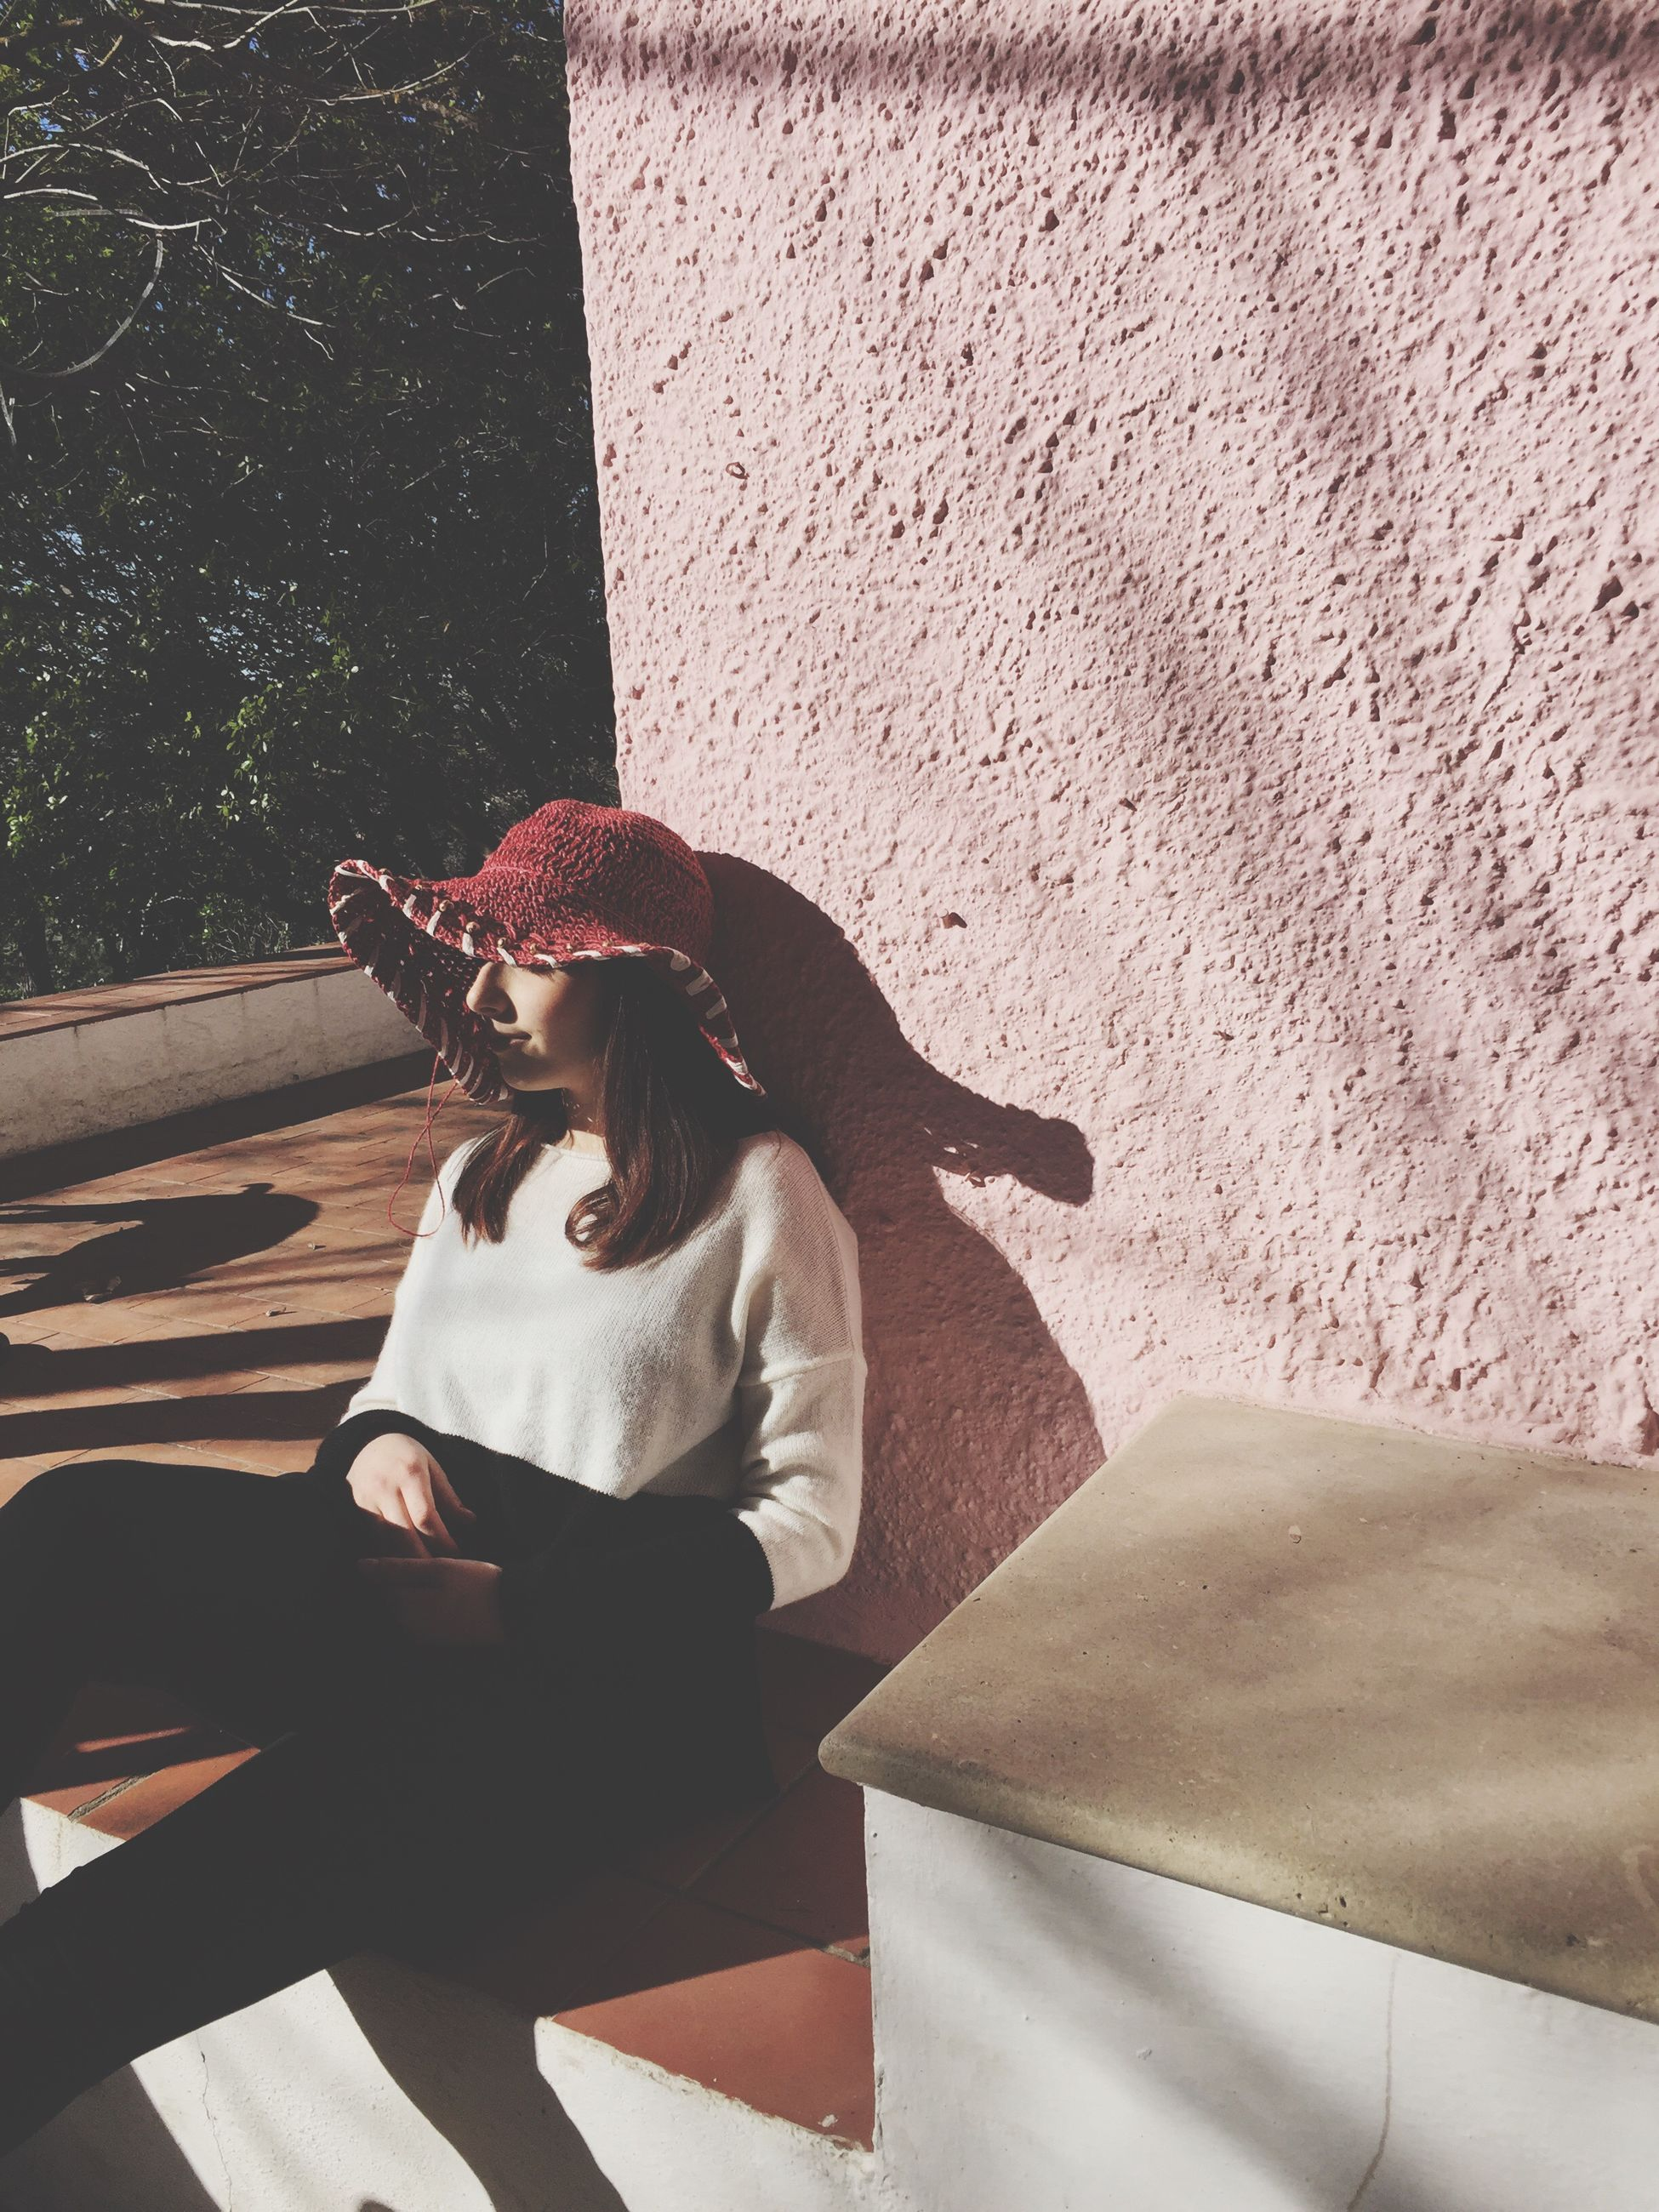 lifestyles, full length, casual clothing, leisure activity, standing, shadow, young adult, wall - building feature, young women, high angle view, built structure, person, architecture, sunlight, sitting, day, walking, three quarter length